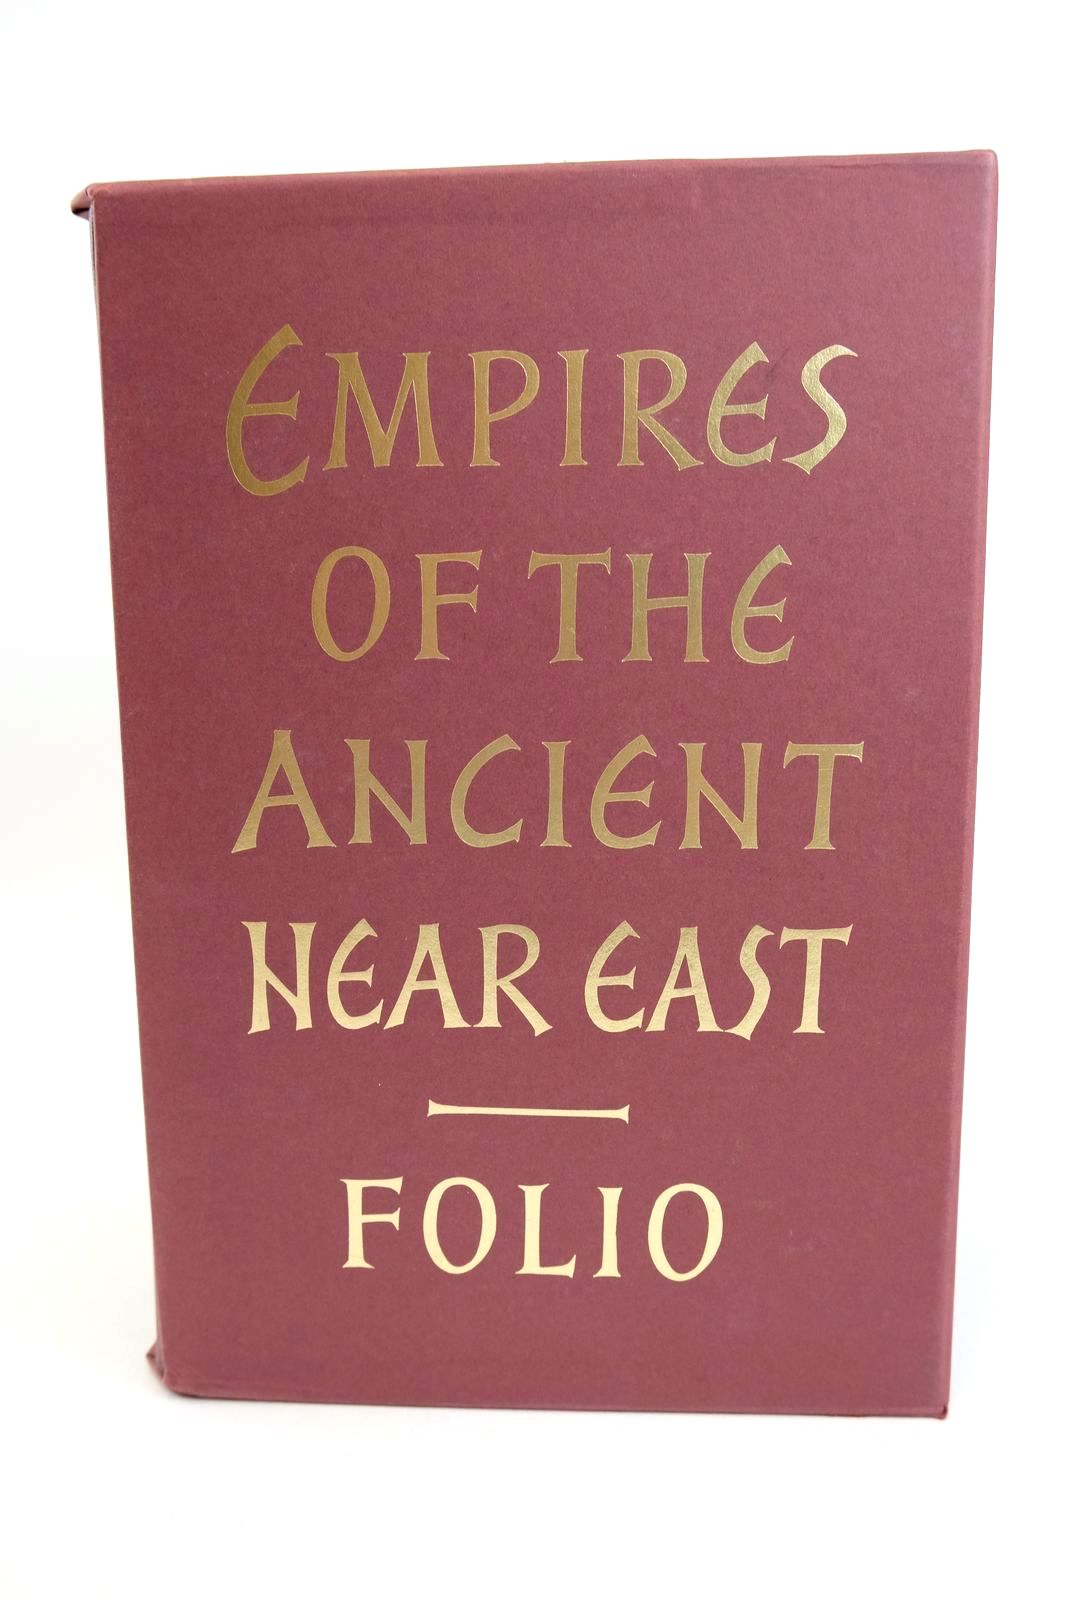 Photo of EMPIRES OF THE ANCIENT NEAR EAST (FOUR VOLUMES) written by Saggs, H.W.F. Gardiner, Alan Cook, J.M. Gurney, O.R. published by Folio Society (STOCK CODE: 1318678)  for sale by Stella & Rose's Books